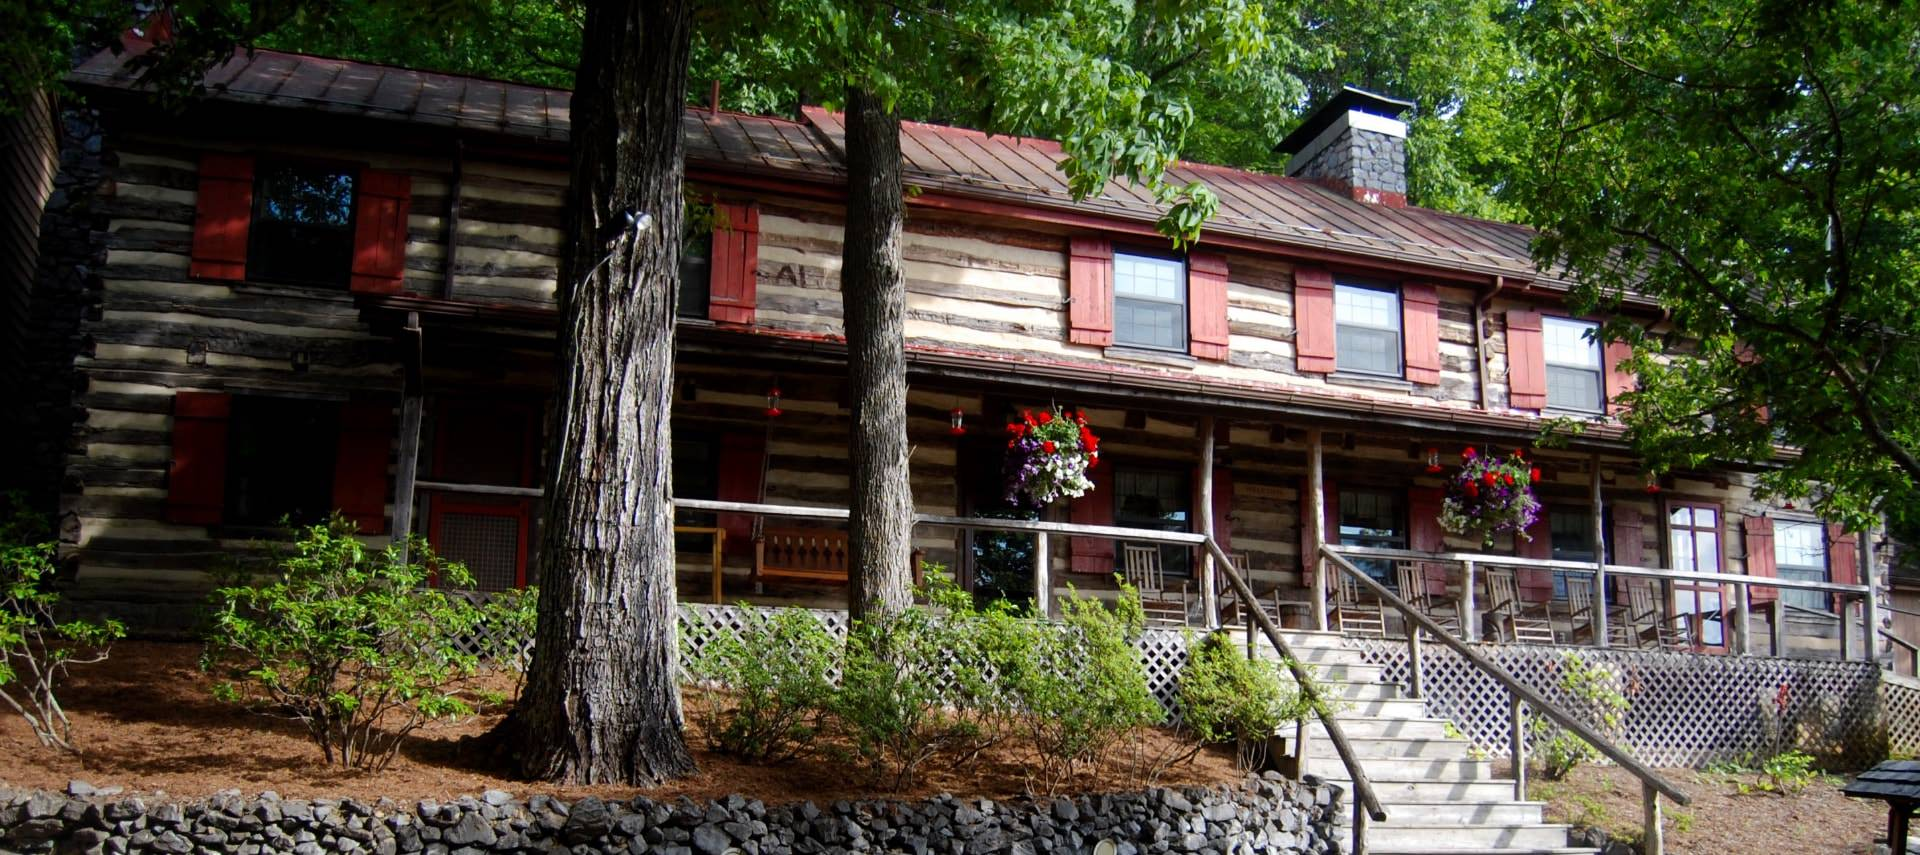 Exterior view of home that looks like a log cabin with brownish red shutters, long porch, and wooden rocking chairs surrounded by tall trees